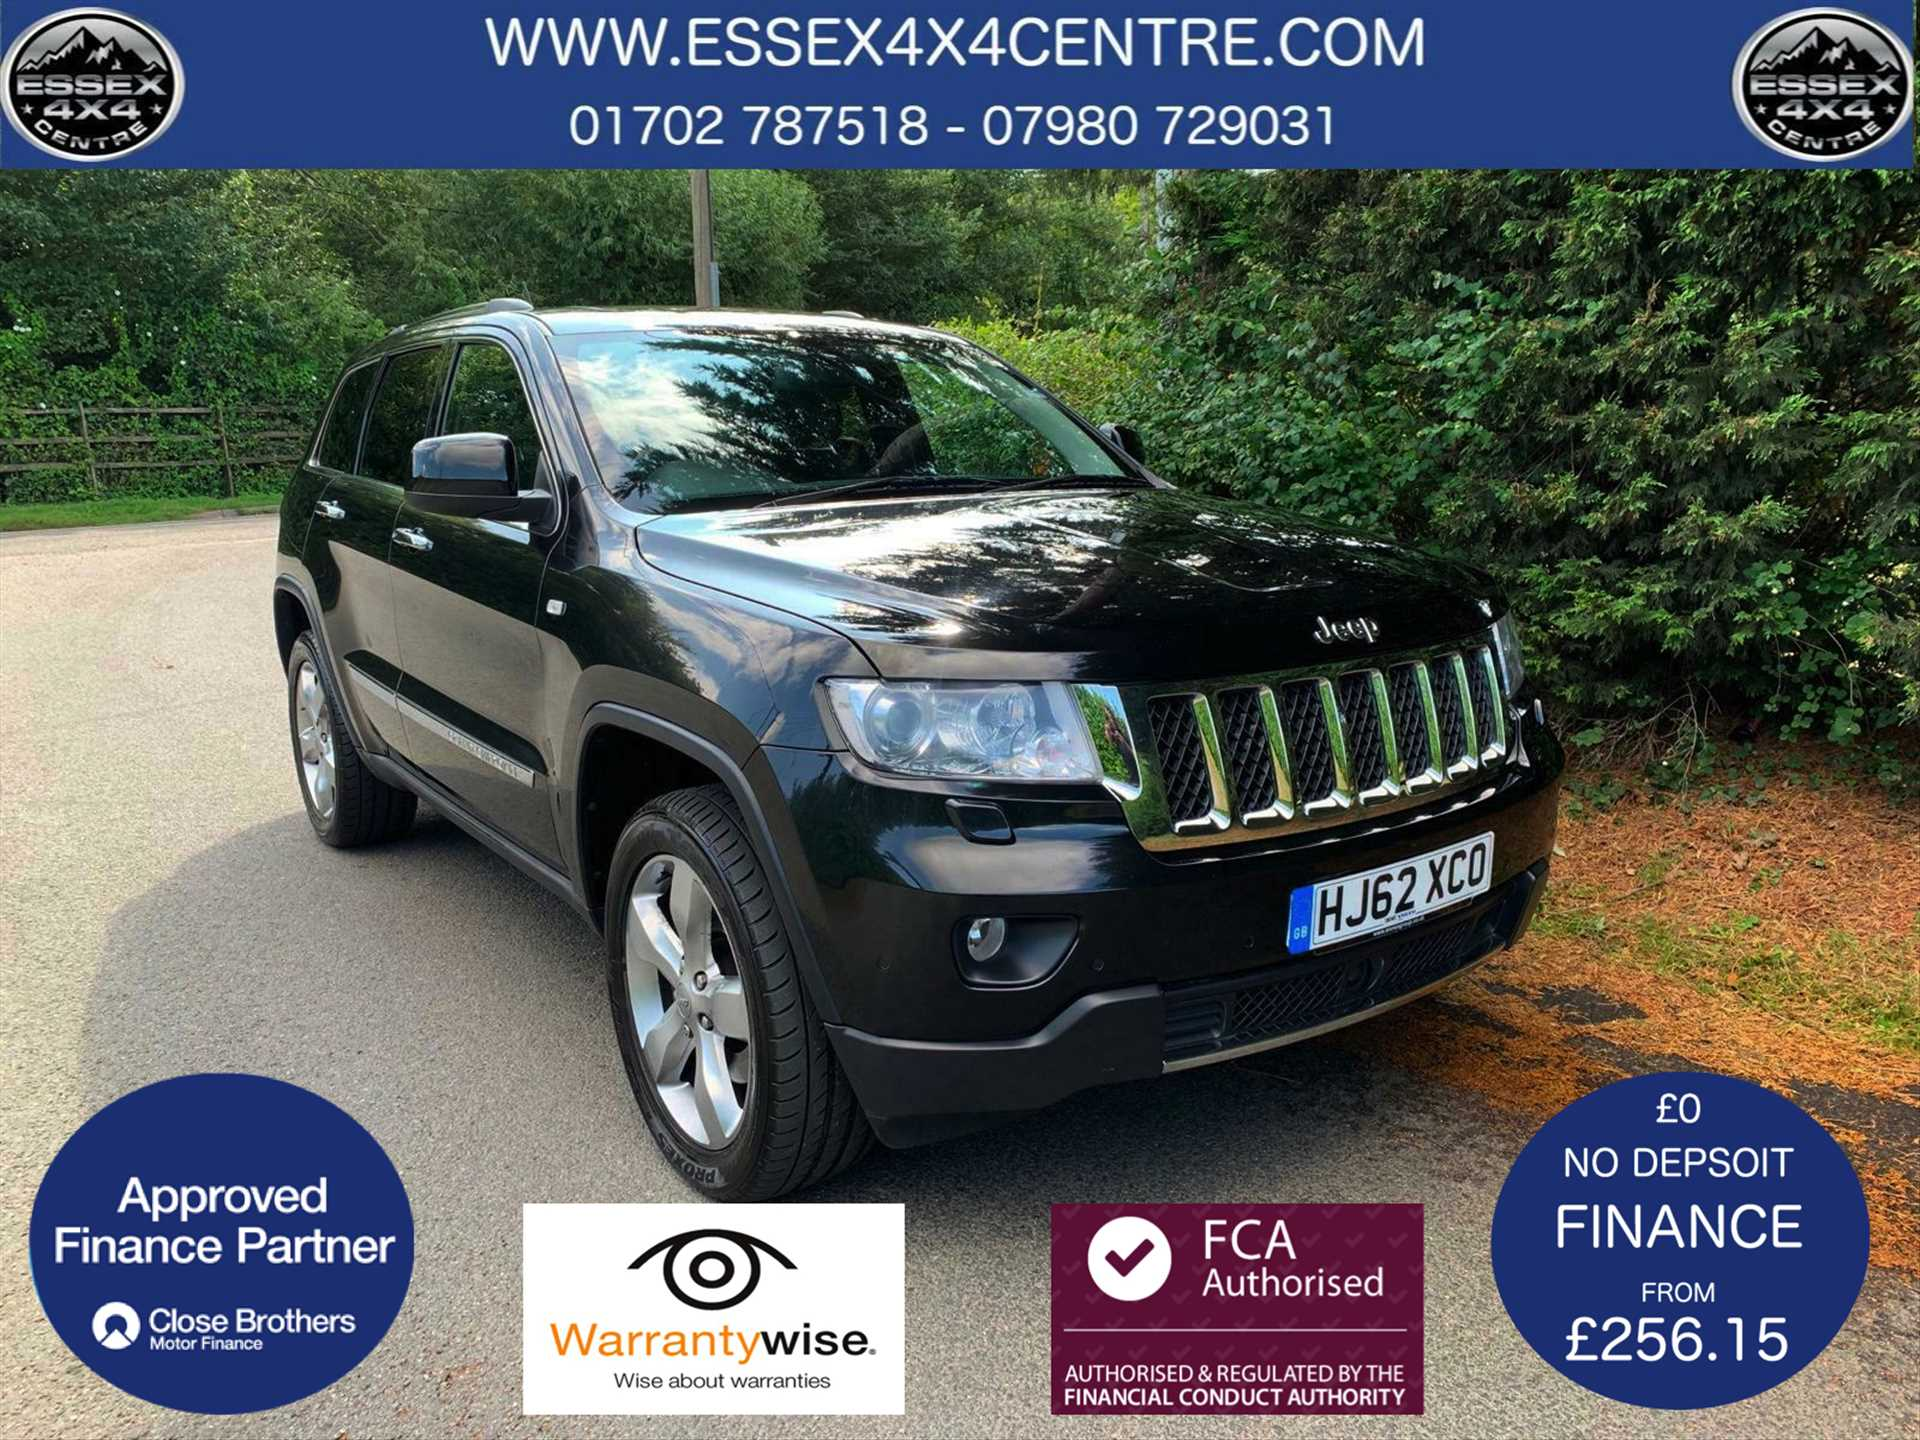 Essex 4X4 Centre | Used Cars for Sale | Cheap Used Cars